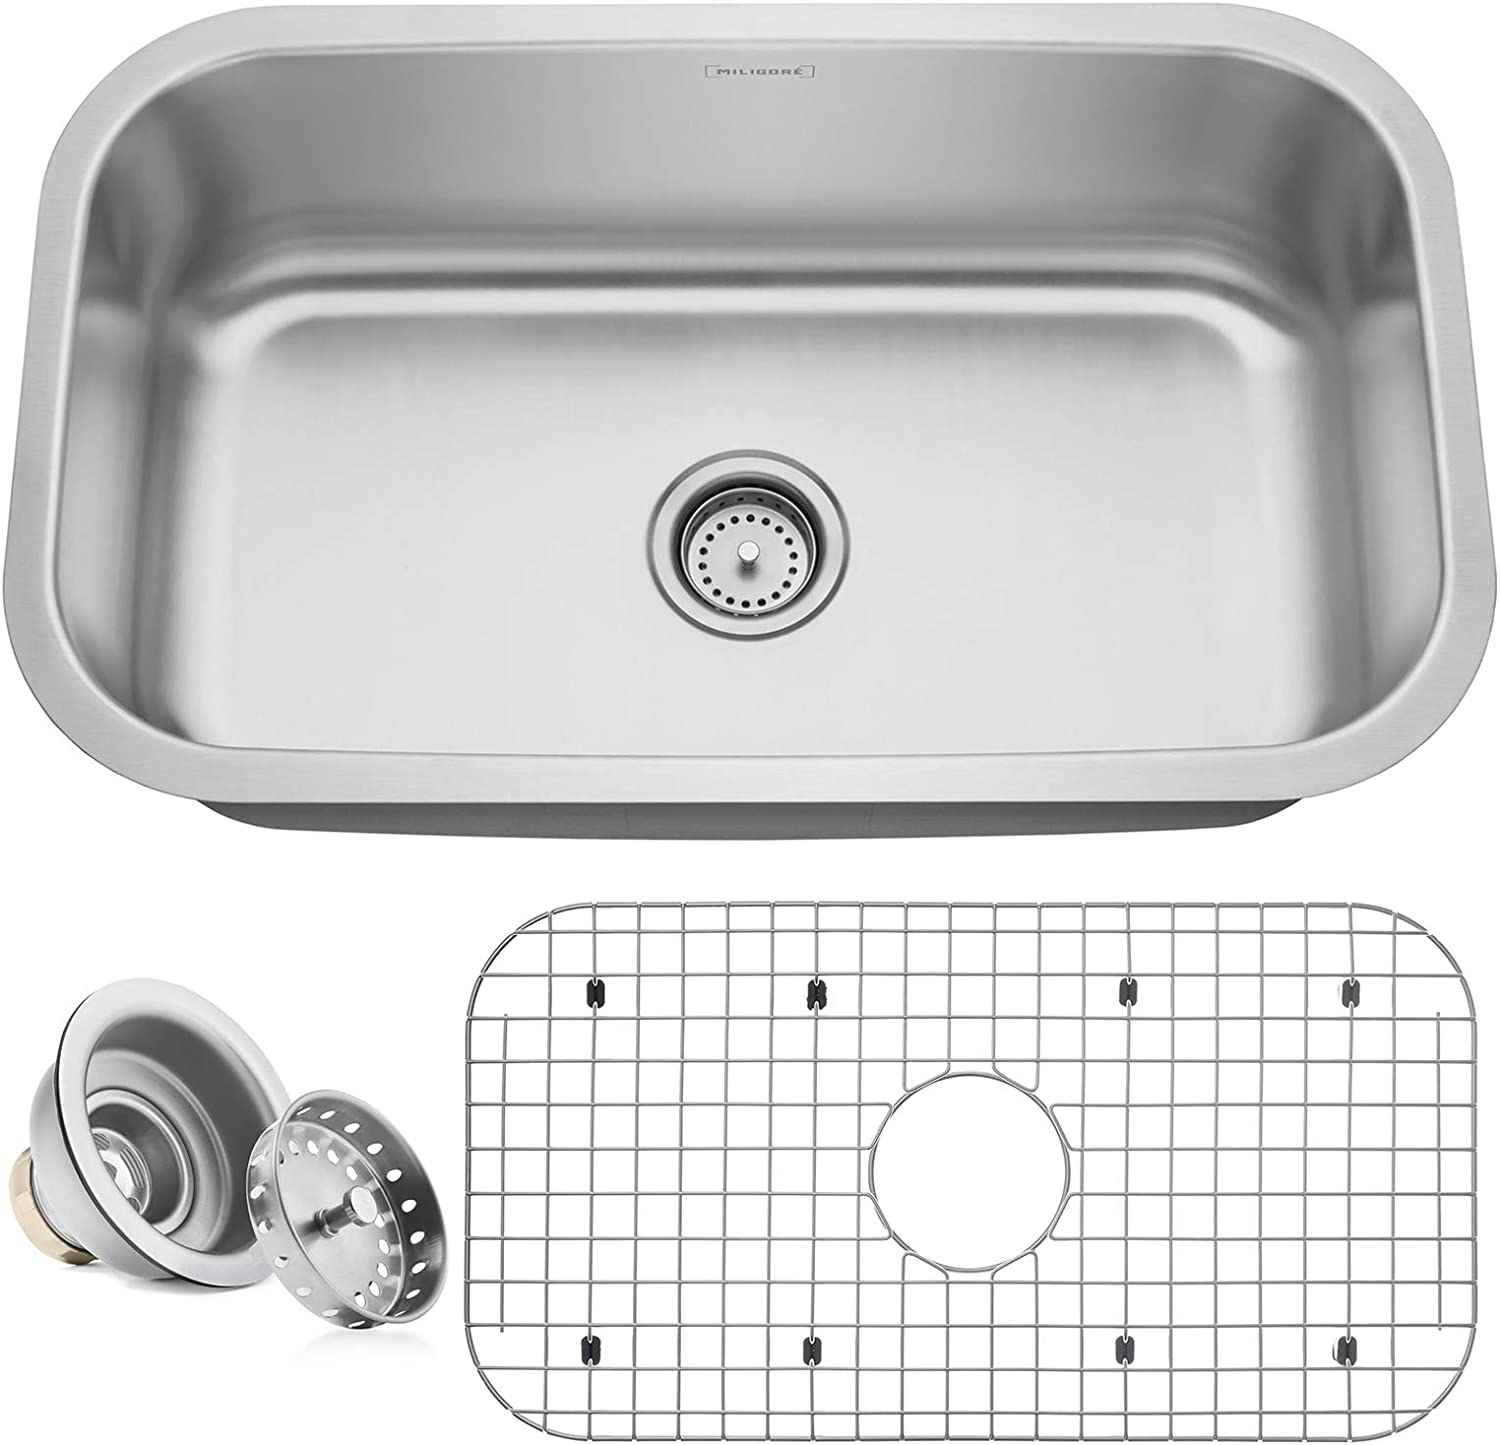 Miligore 30 x 18 x 9 Deep Single Bowl Undermount 16-Gauge Stainless Steel Kitchen Sink – Includes Drain Grid